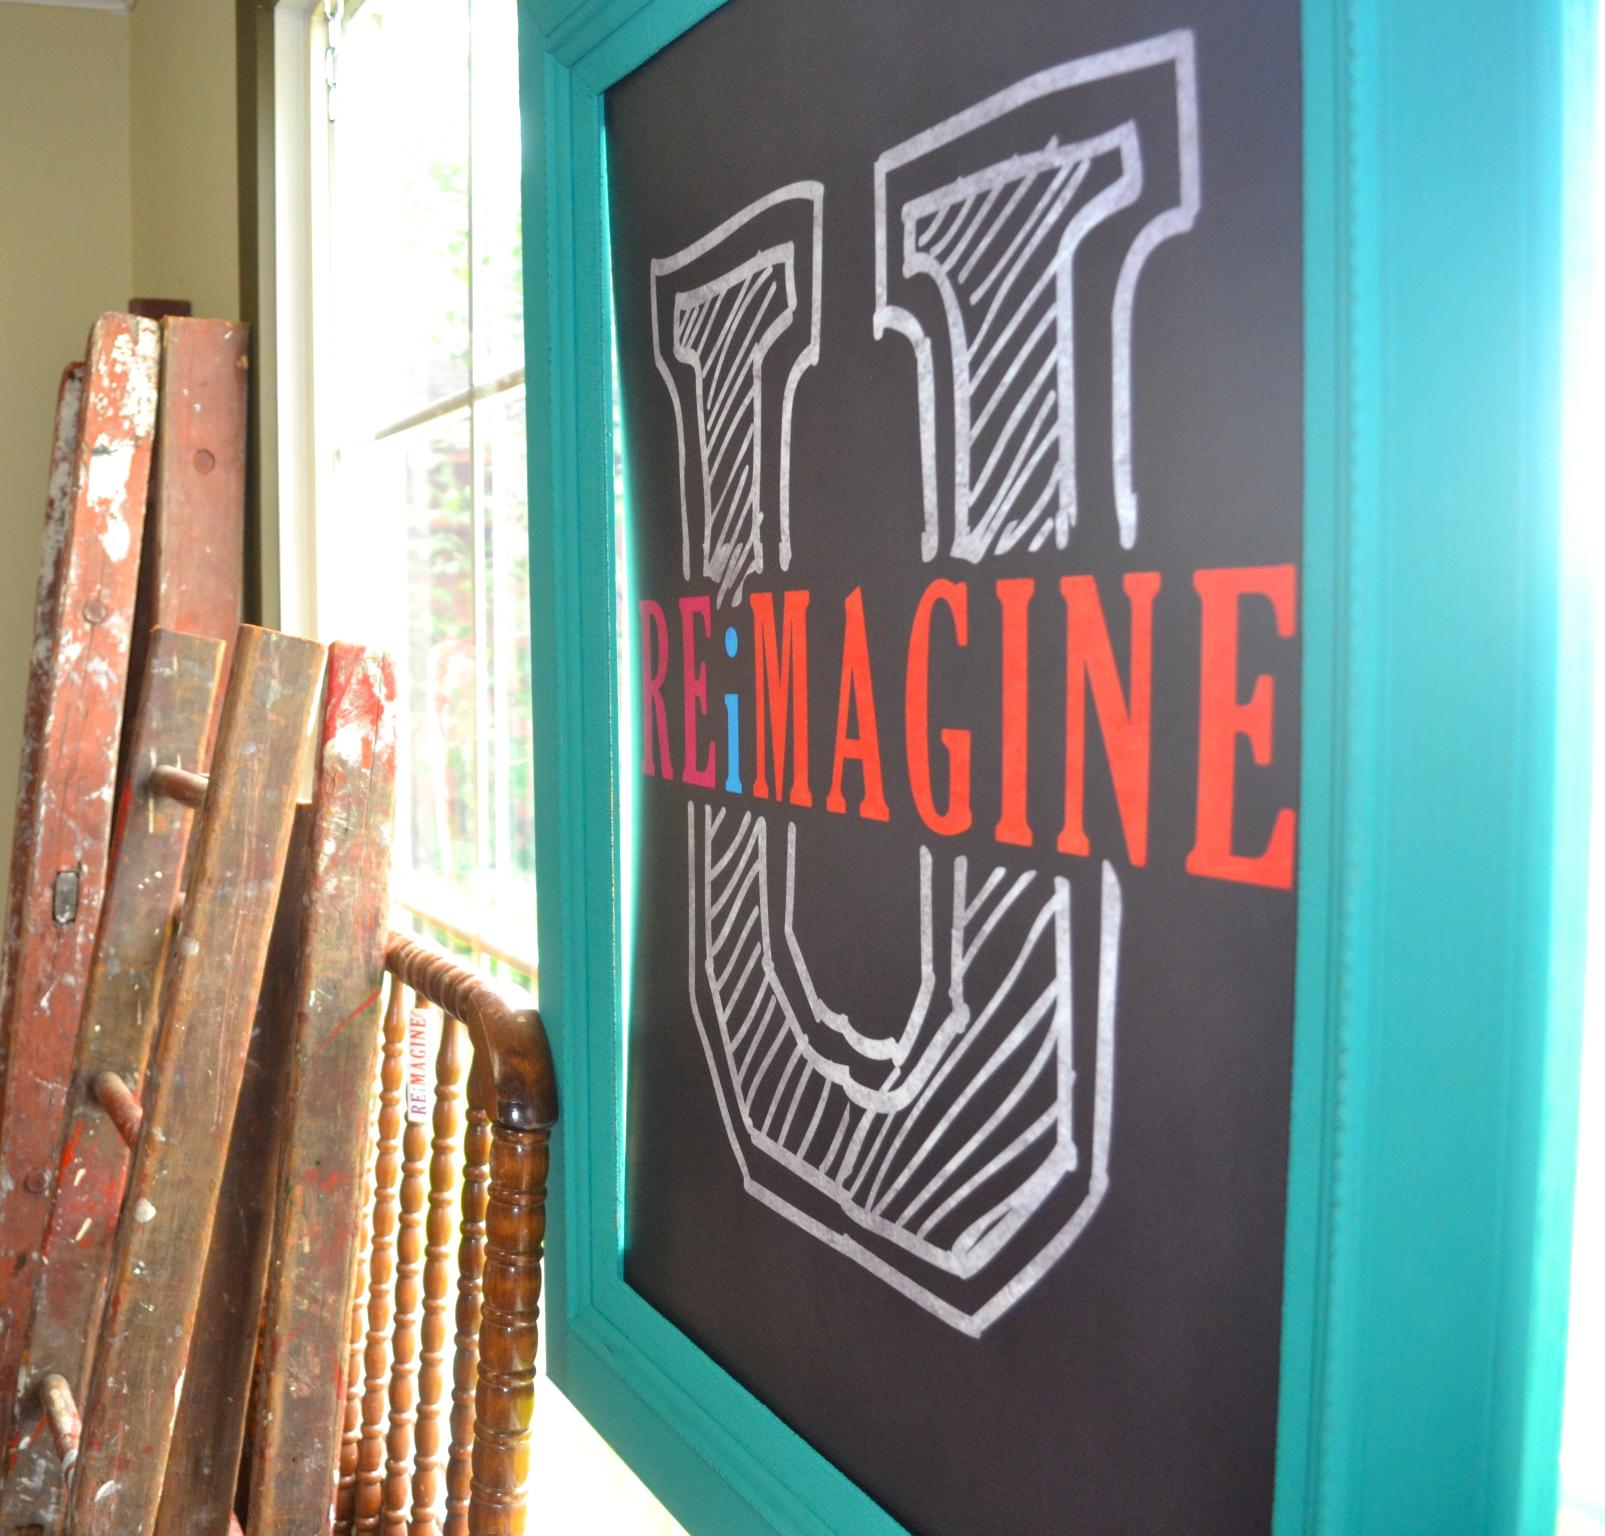 REiMAGINE - Photos by: Mack John